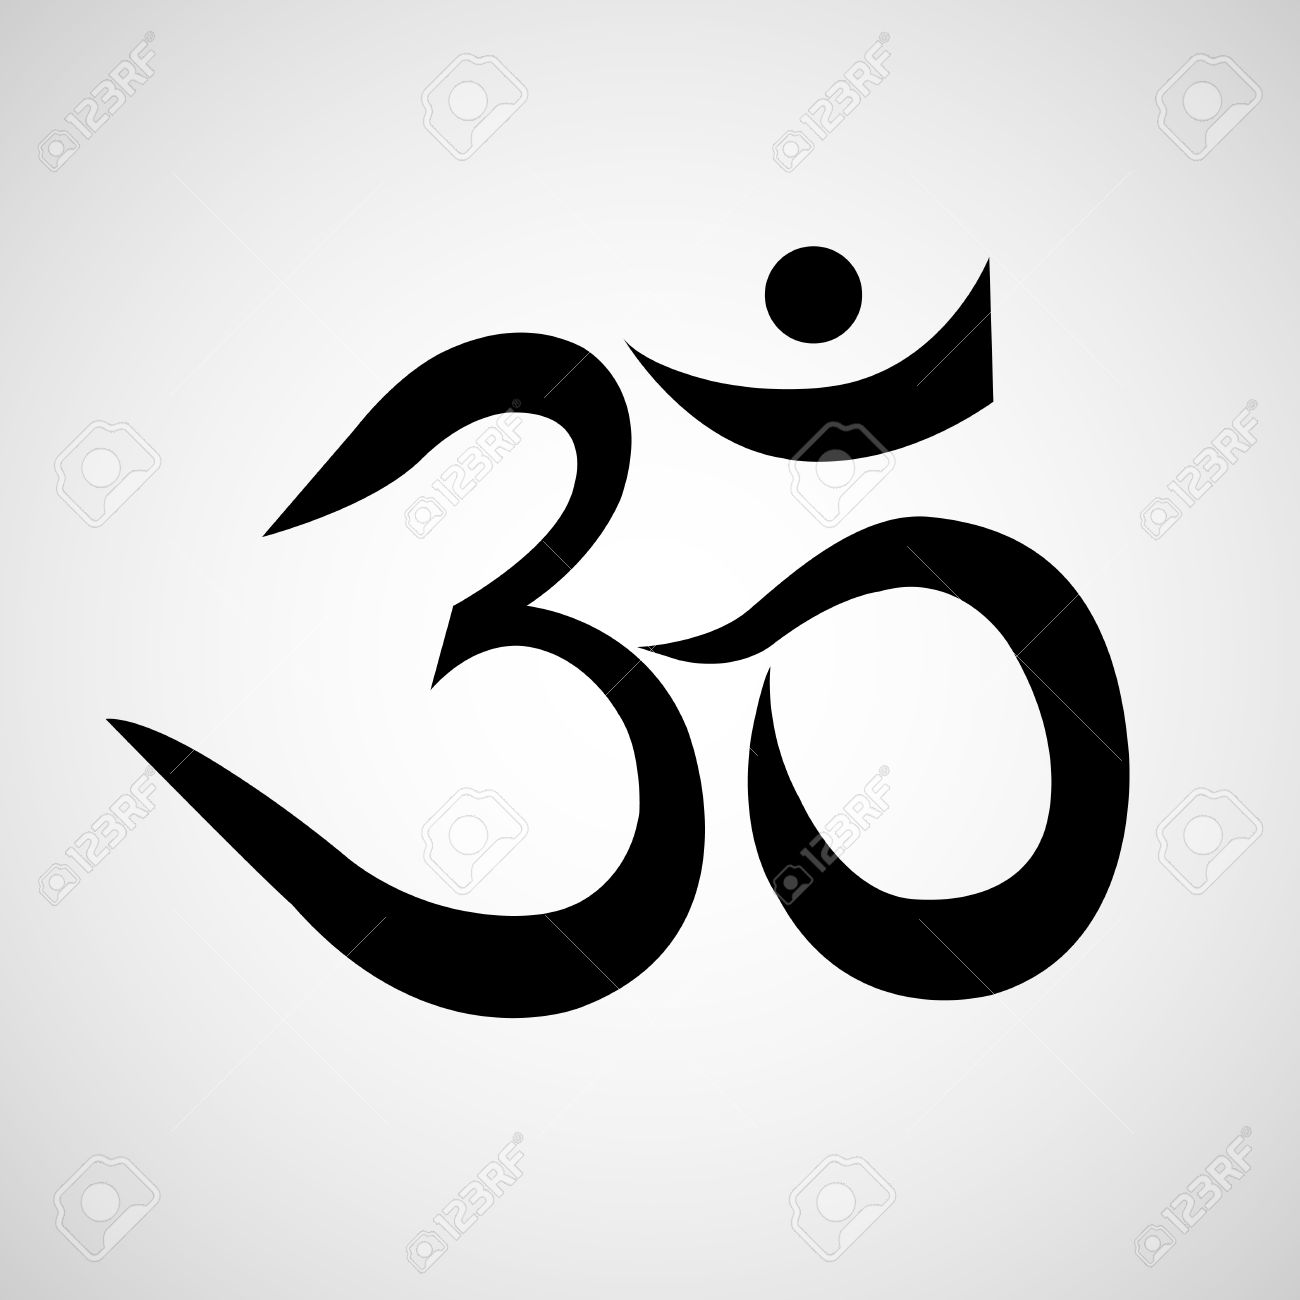 Om Or Aum Sign Isolated On White Background Symbol Of Buddhism